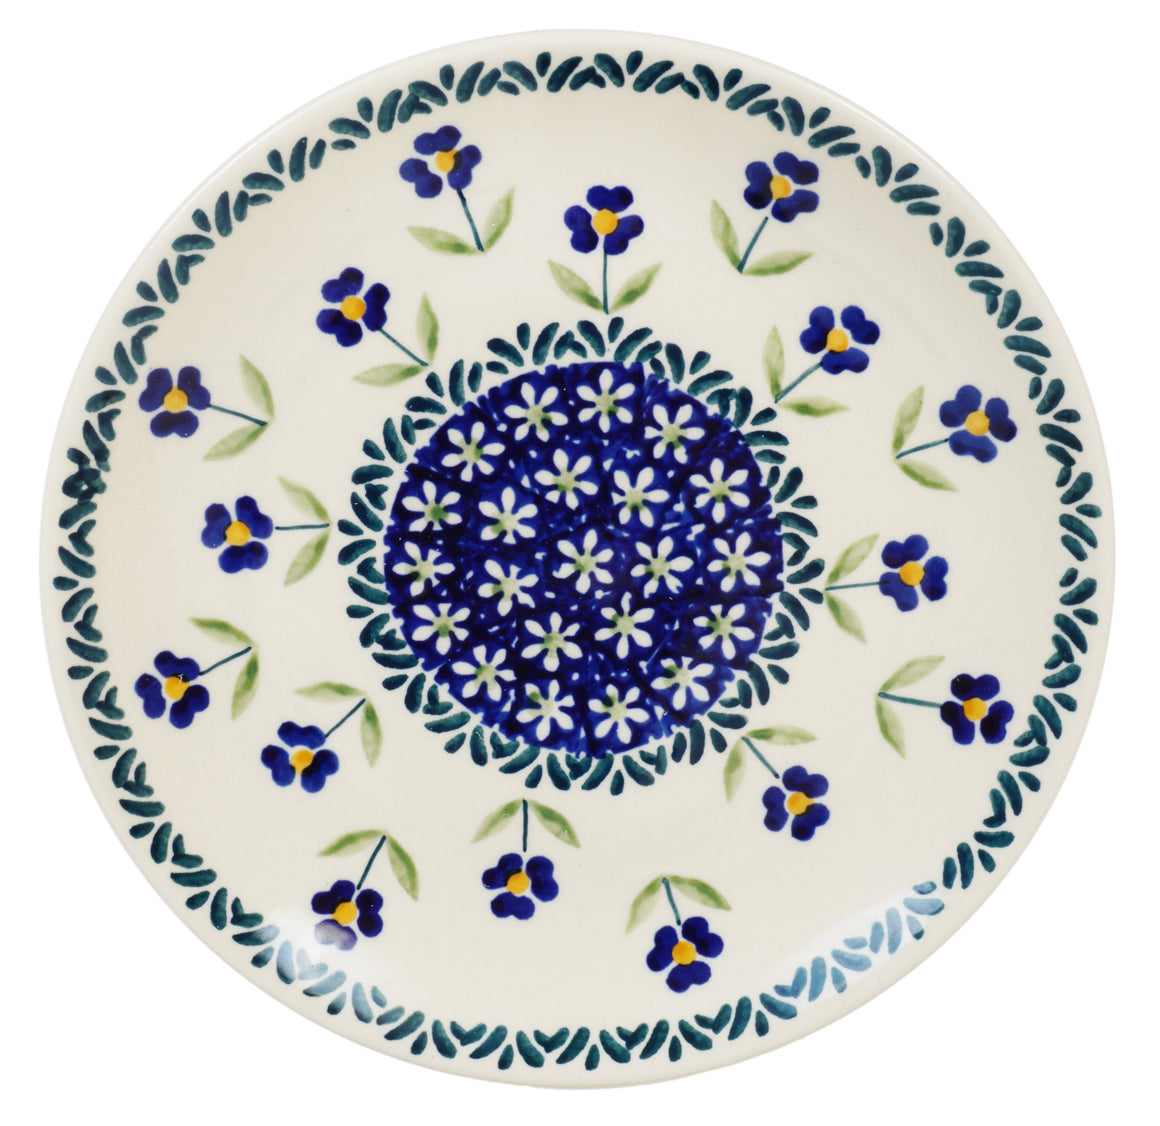 "7.25"" Dessert Plate (Forget Me Not)"